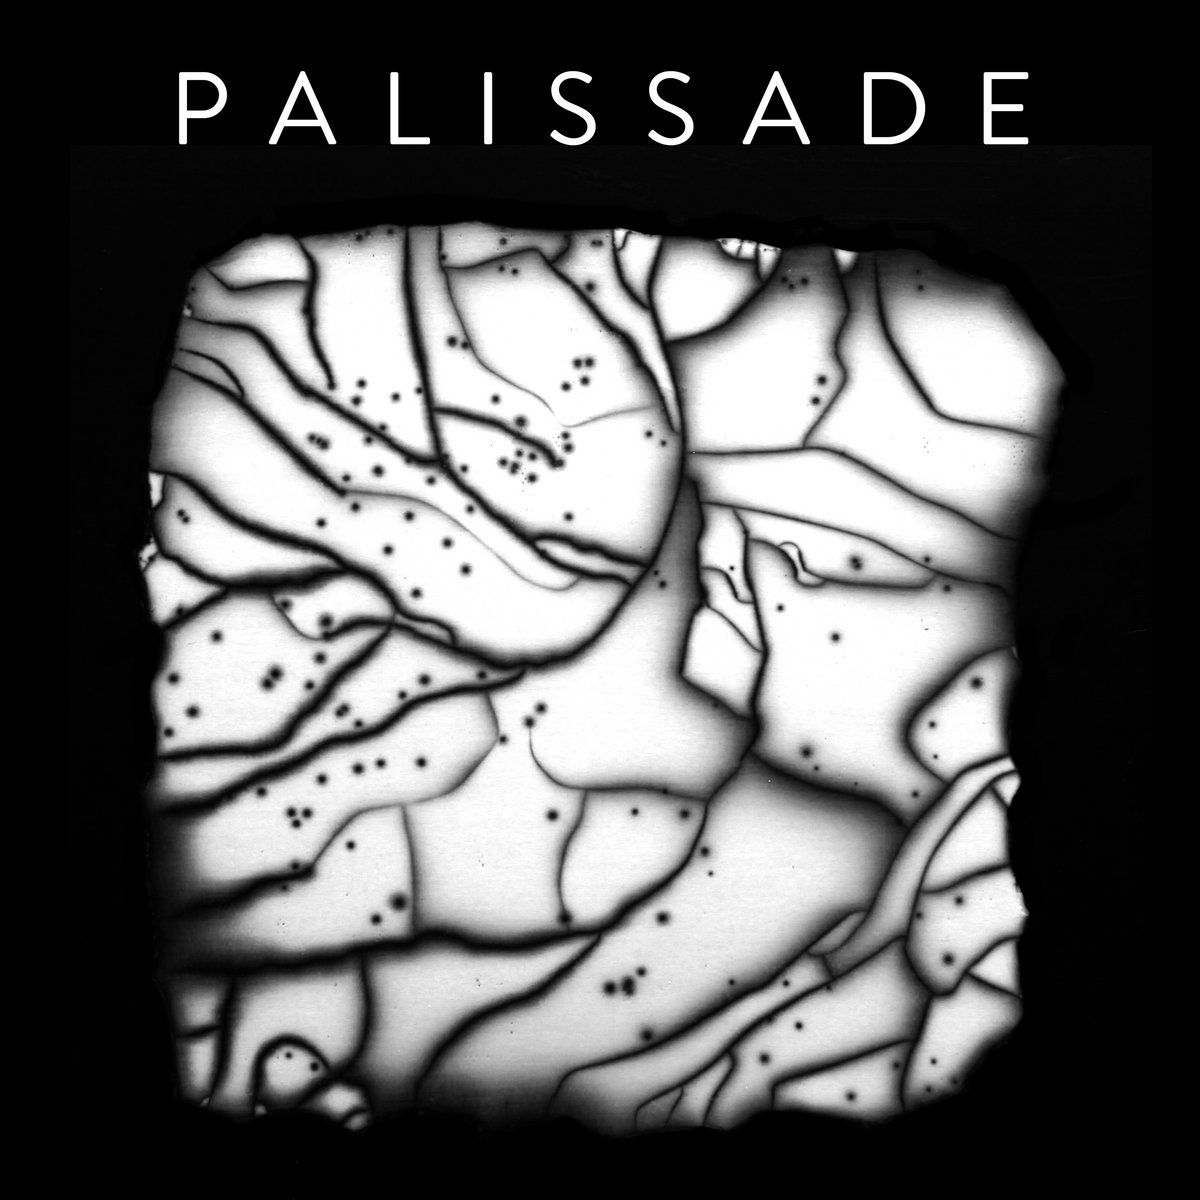 Post-punk shivers – Palissade – Palissade